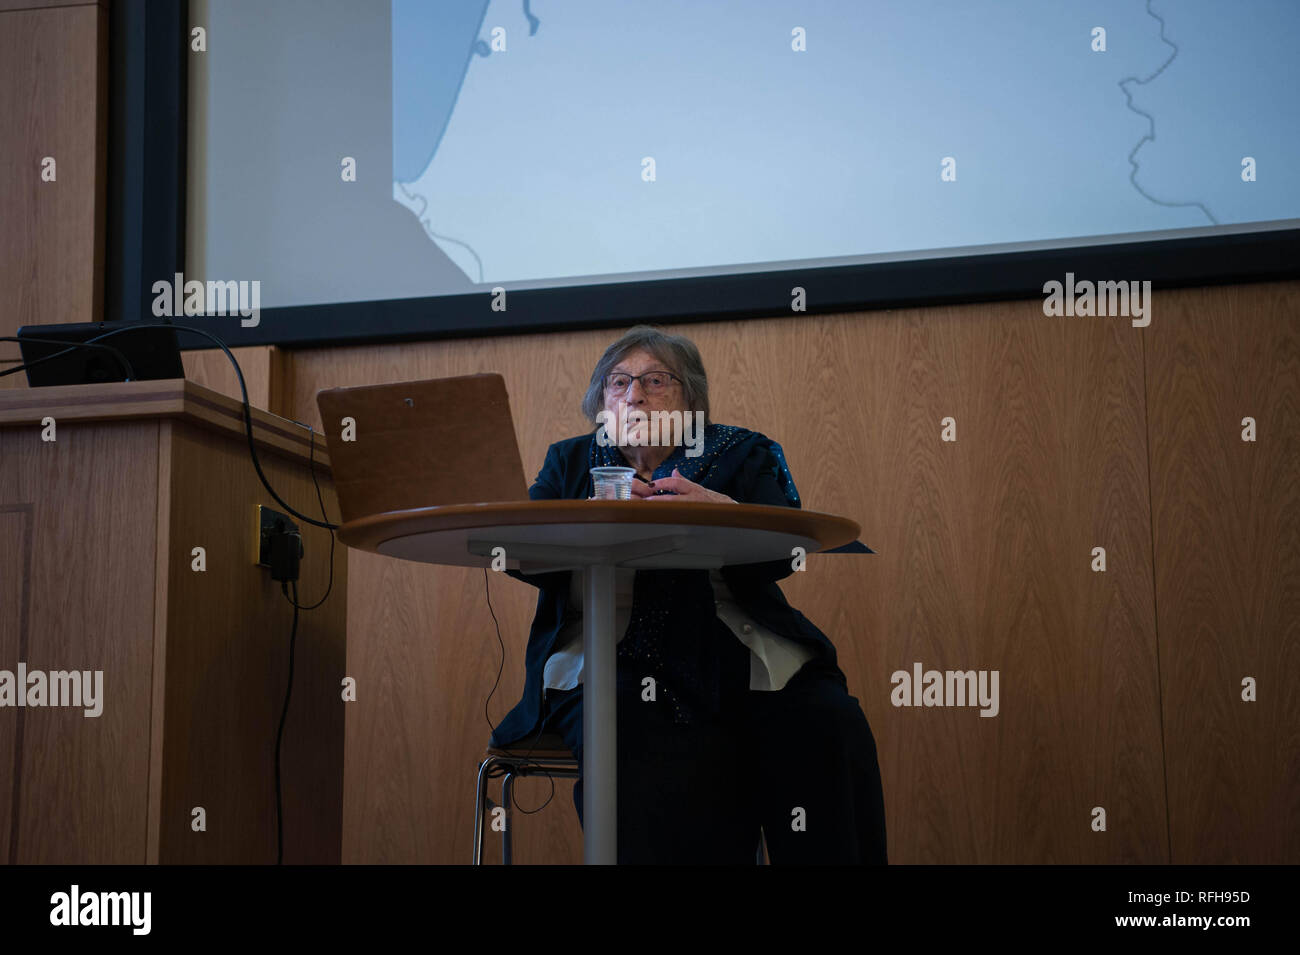 Bristol, UK. 25th Jan 2019. Iby Knill, holocaust survivor (95 years old) speaking in Bristol, United Kingdom at Holocaust Memorial Day Commemoration, Friday 25 January 2019. Credit: Veronika Merkova/Alamy Live News - Stock Image